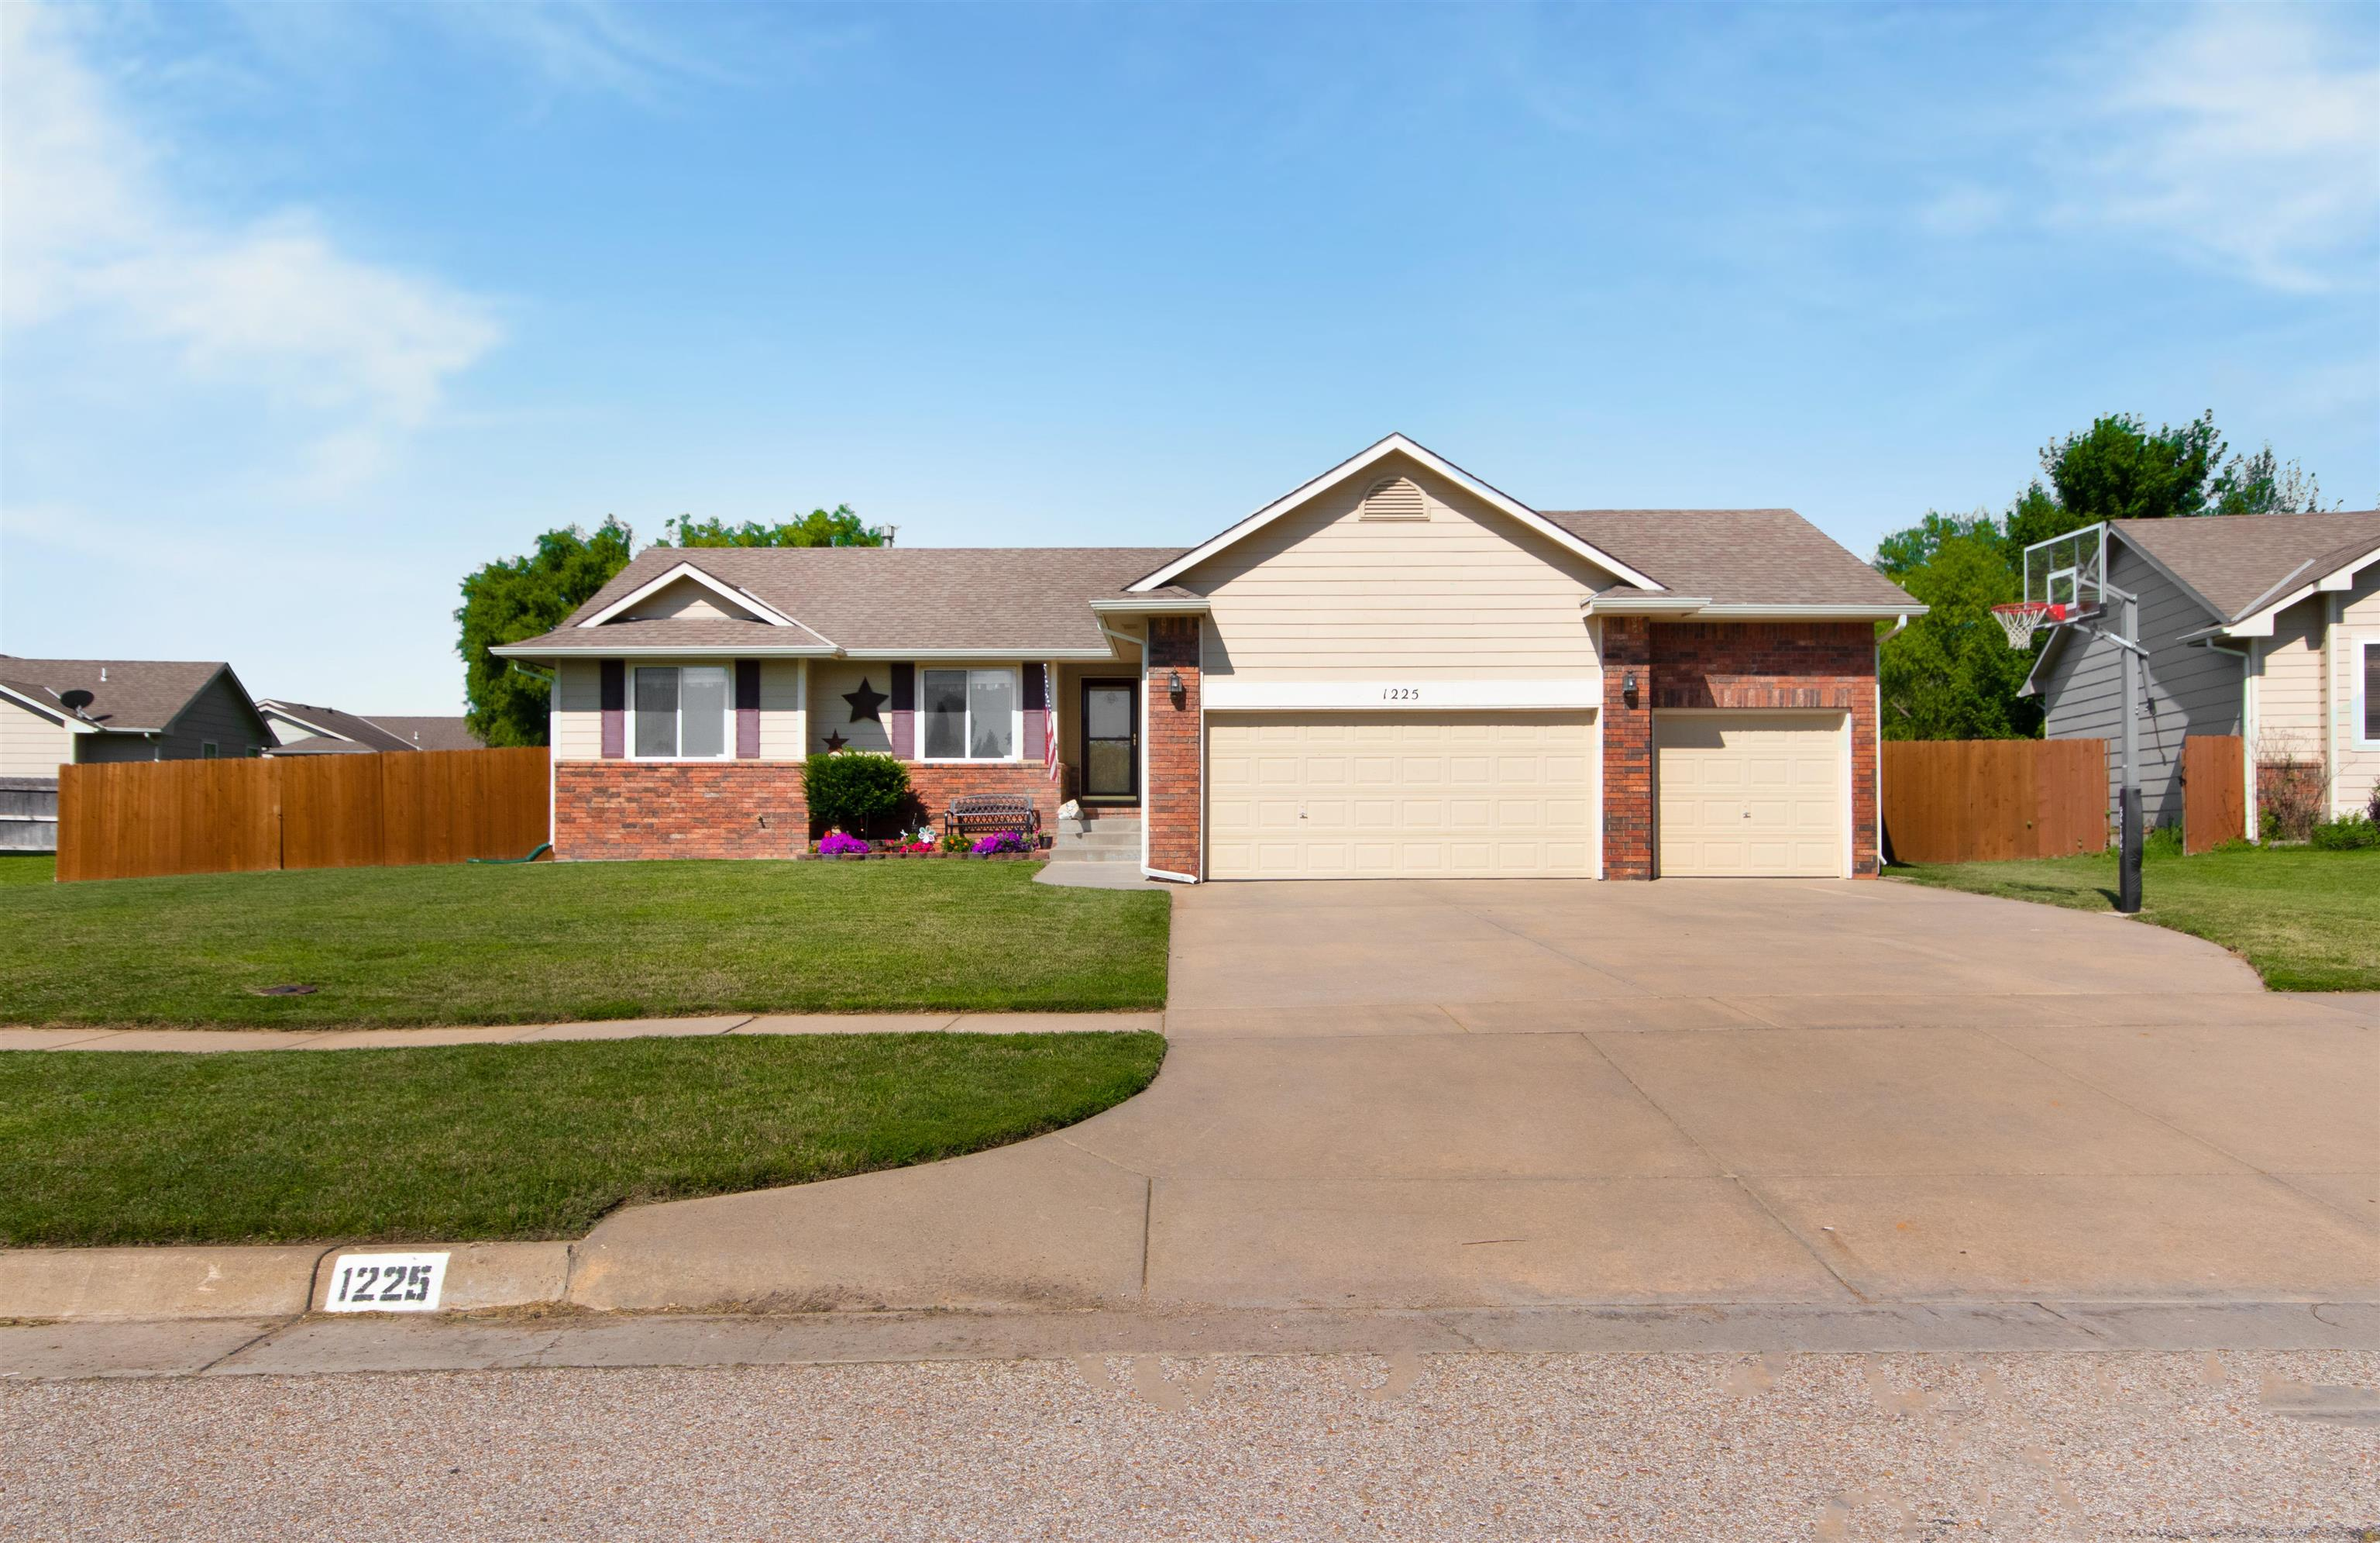 Come home to this 5 bedroom, 3 bathroom home in a quiet neighborhood in Derby. Conveniently located